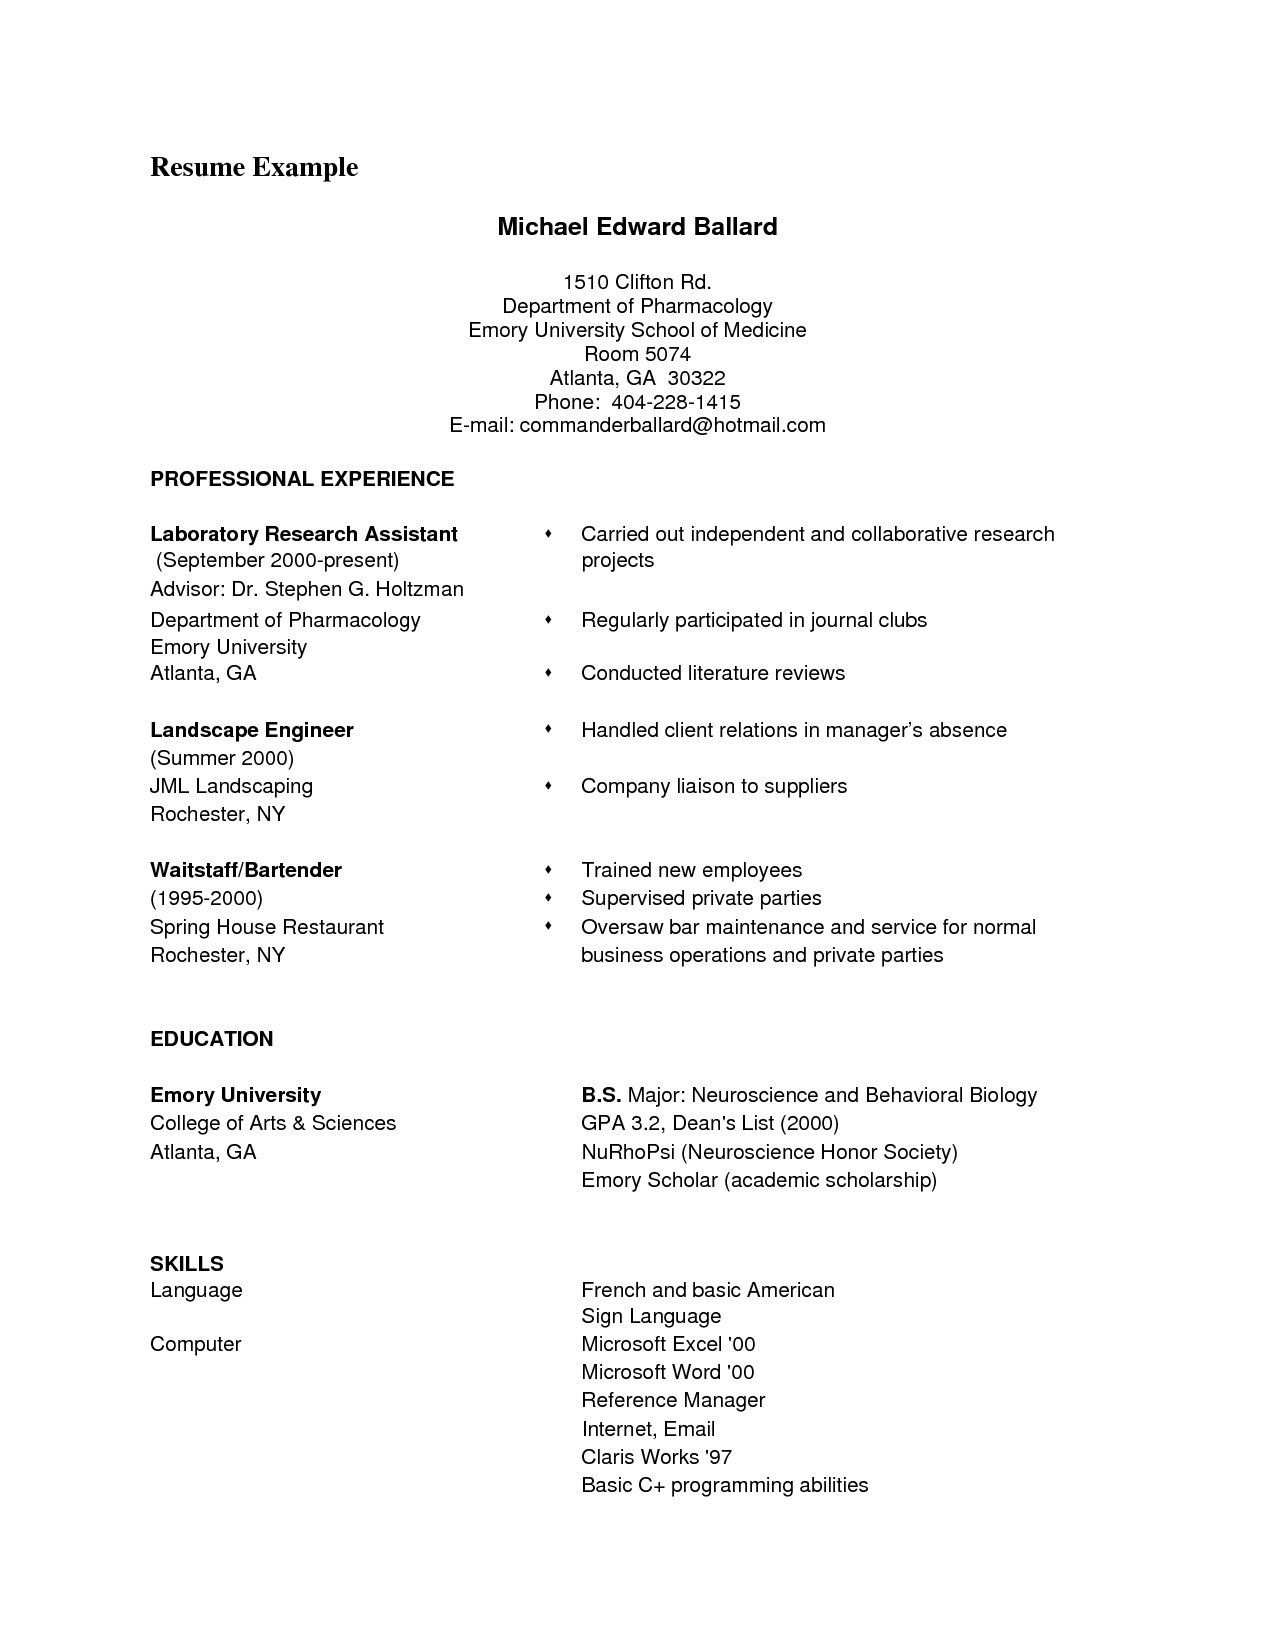 Swiss Resume Template - Classic Resume Templates ¢Ë†Å¡ Powerpoint Templates for Biology New